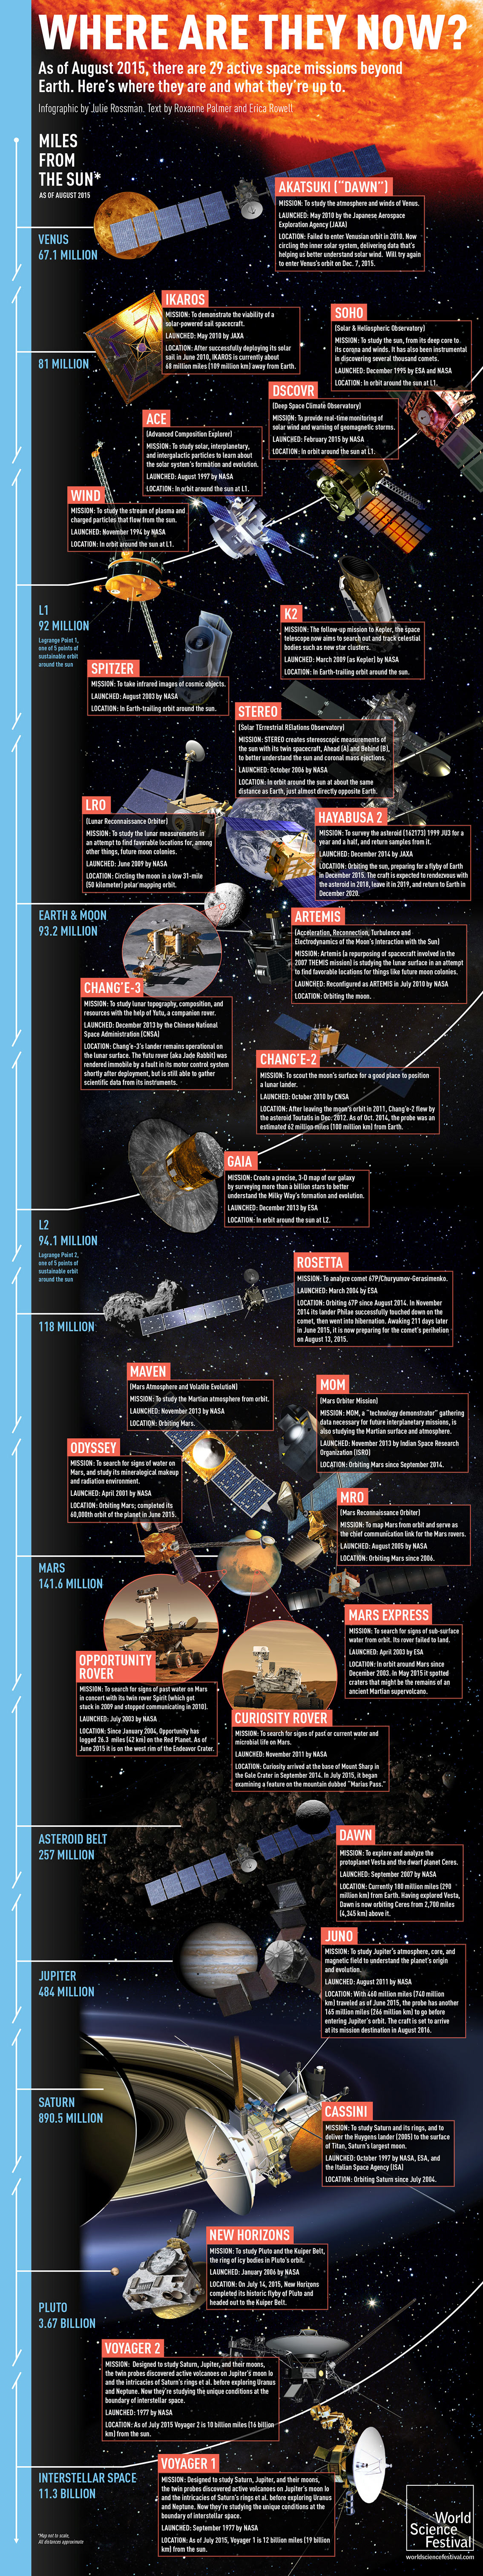 Active Space Missions Beyond Earth - Astronomy Infographic